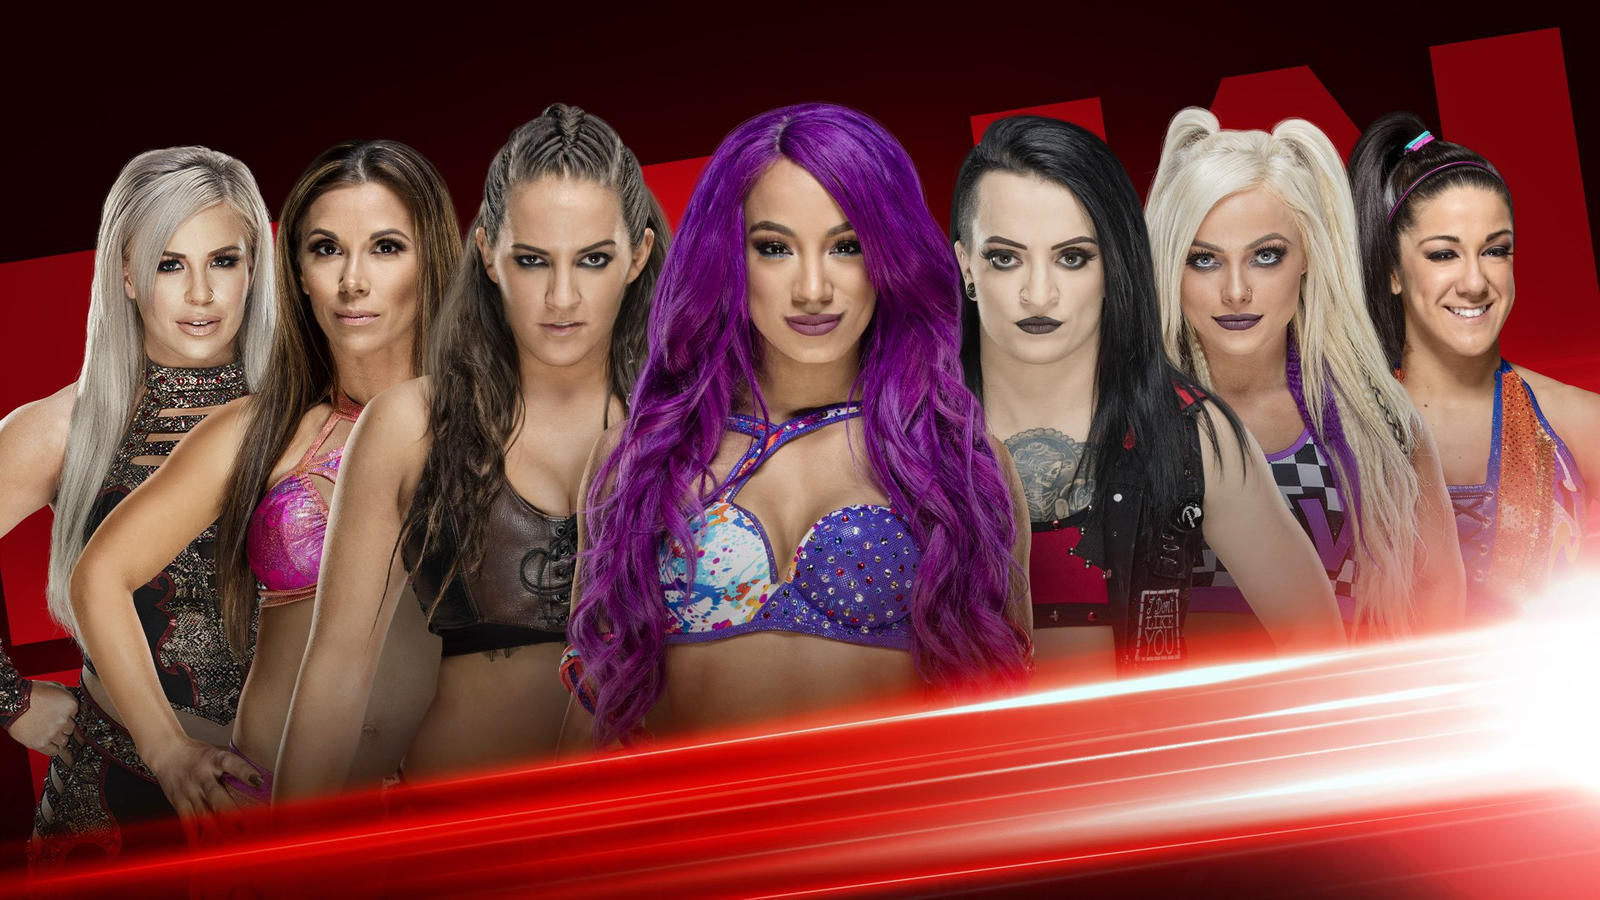 Only one woman can be the final Raw entrant!